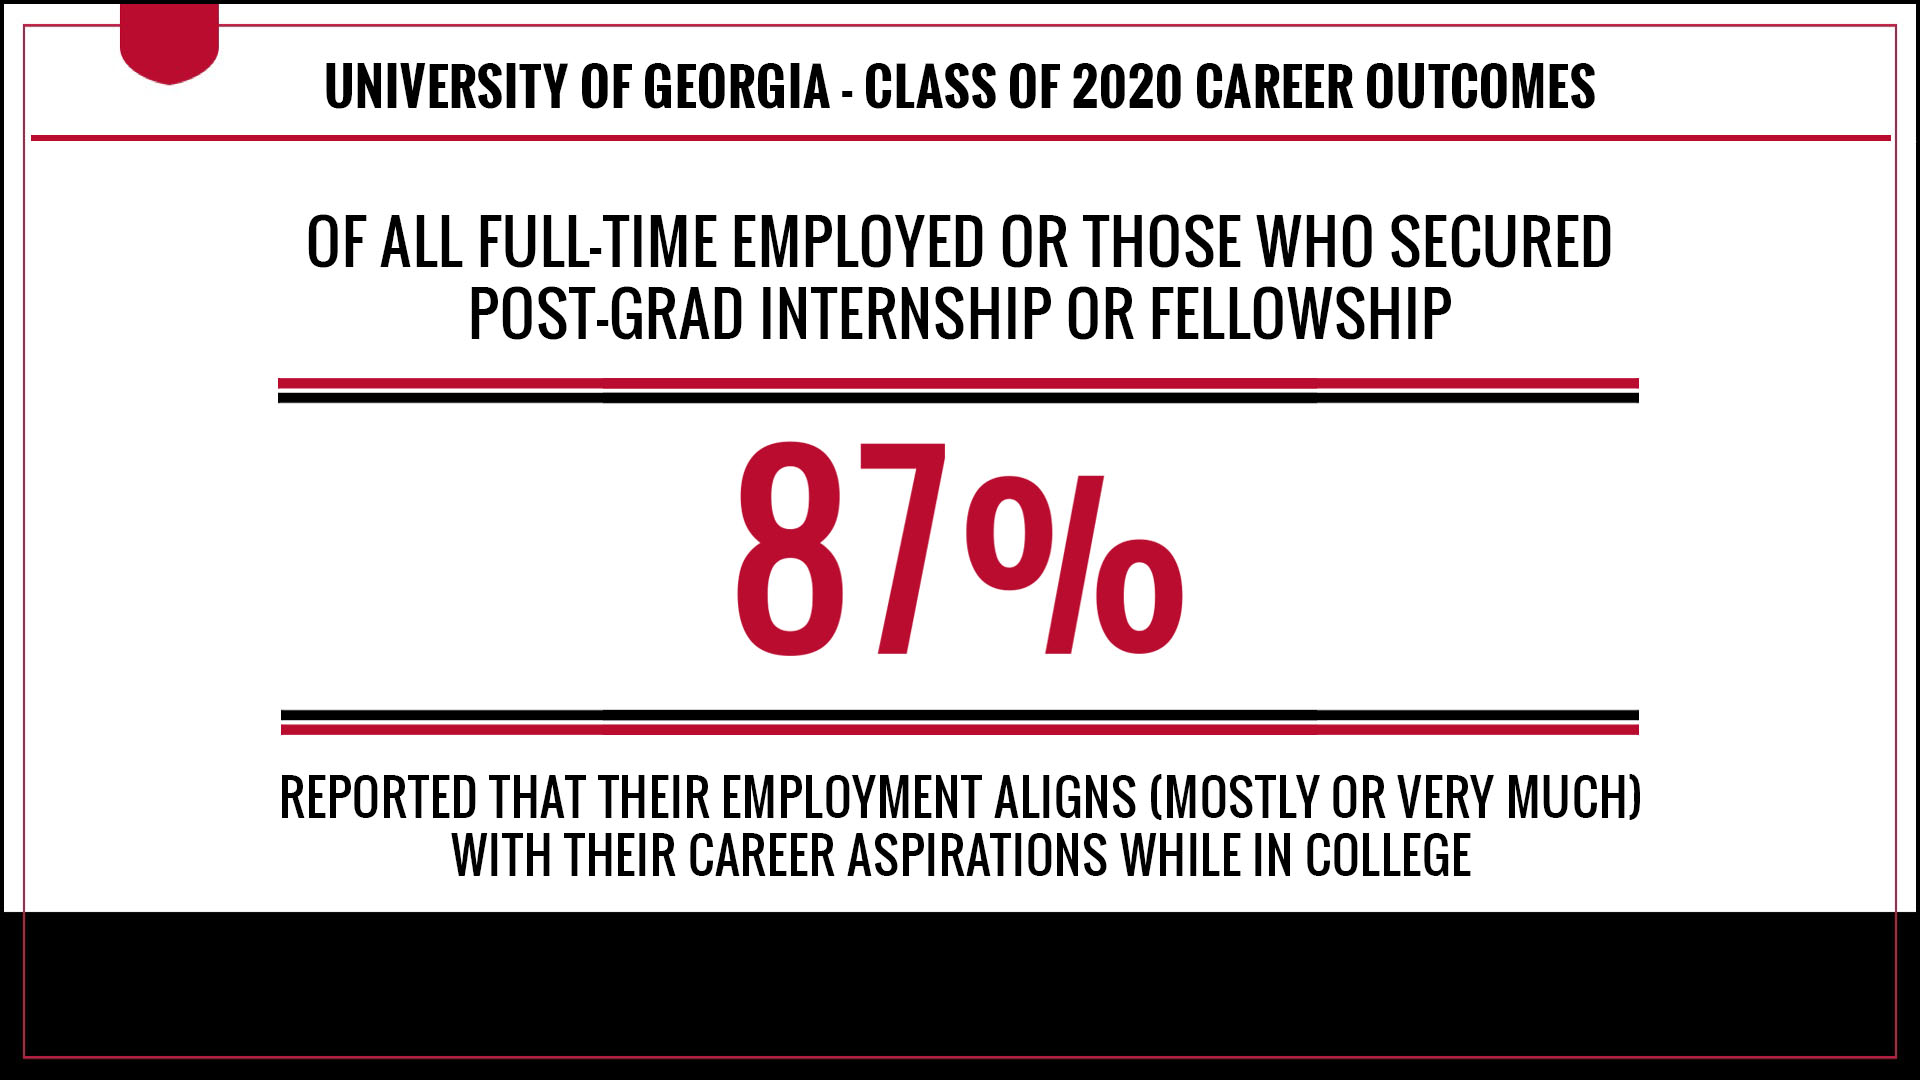 OF ALL FULL-TIME EMPLOYED OR THOSE WHO SECURED A POST-GRAD INTERNSHIP OR FELLOWSHIP, 87 PERCENT REPORTED THAT THEIR EMPLOYMENT ALIGNS (MOSTLY OR VERY MUCH) WITH THEIR CAREER ASPIRATIONS WHILE IN COLLEGE